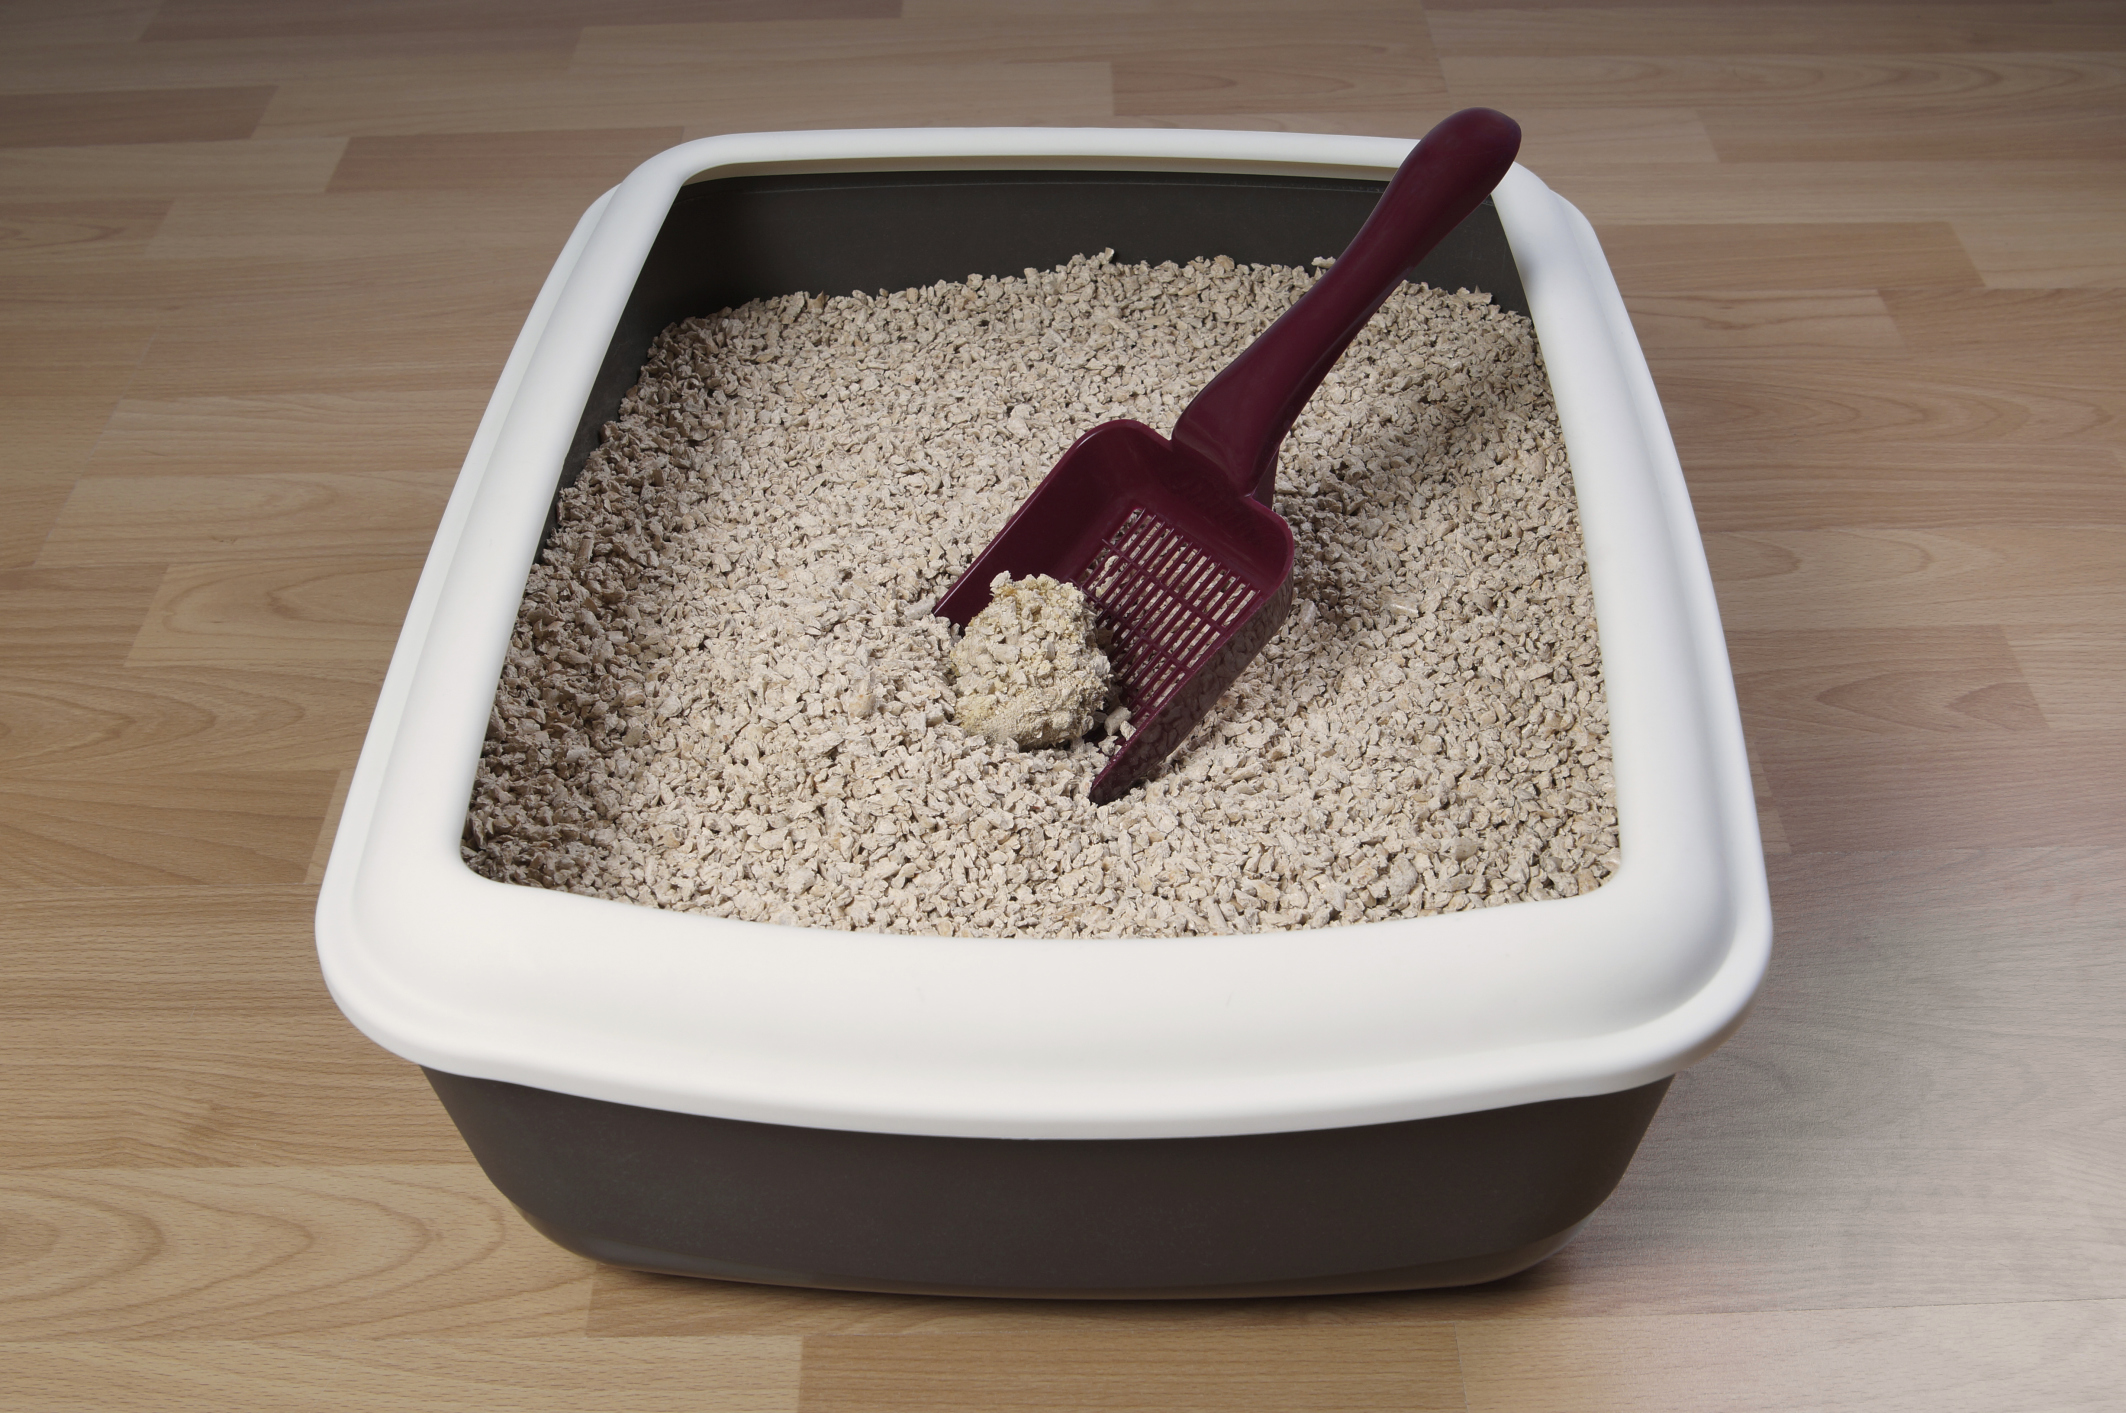 Cat Litter Box Image